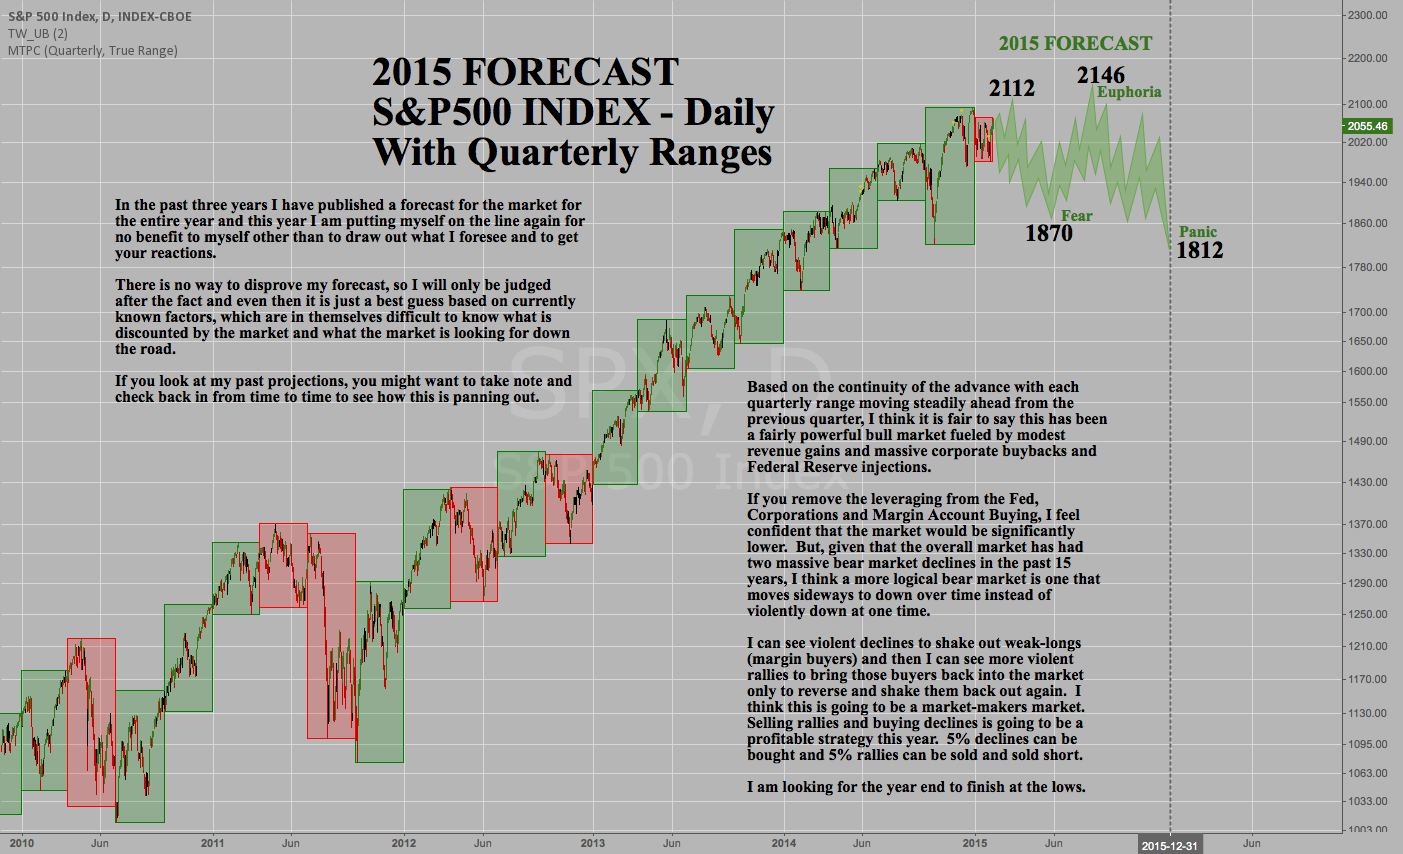 Tim West's 2015 S&P500 Stock Market Forecast